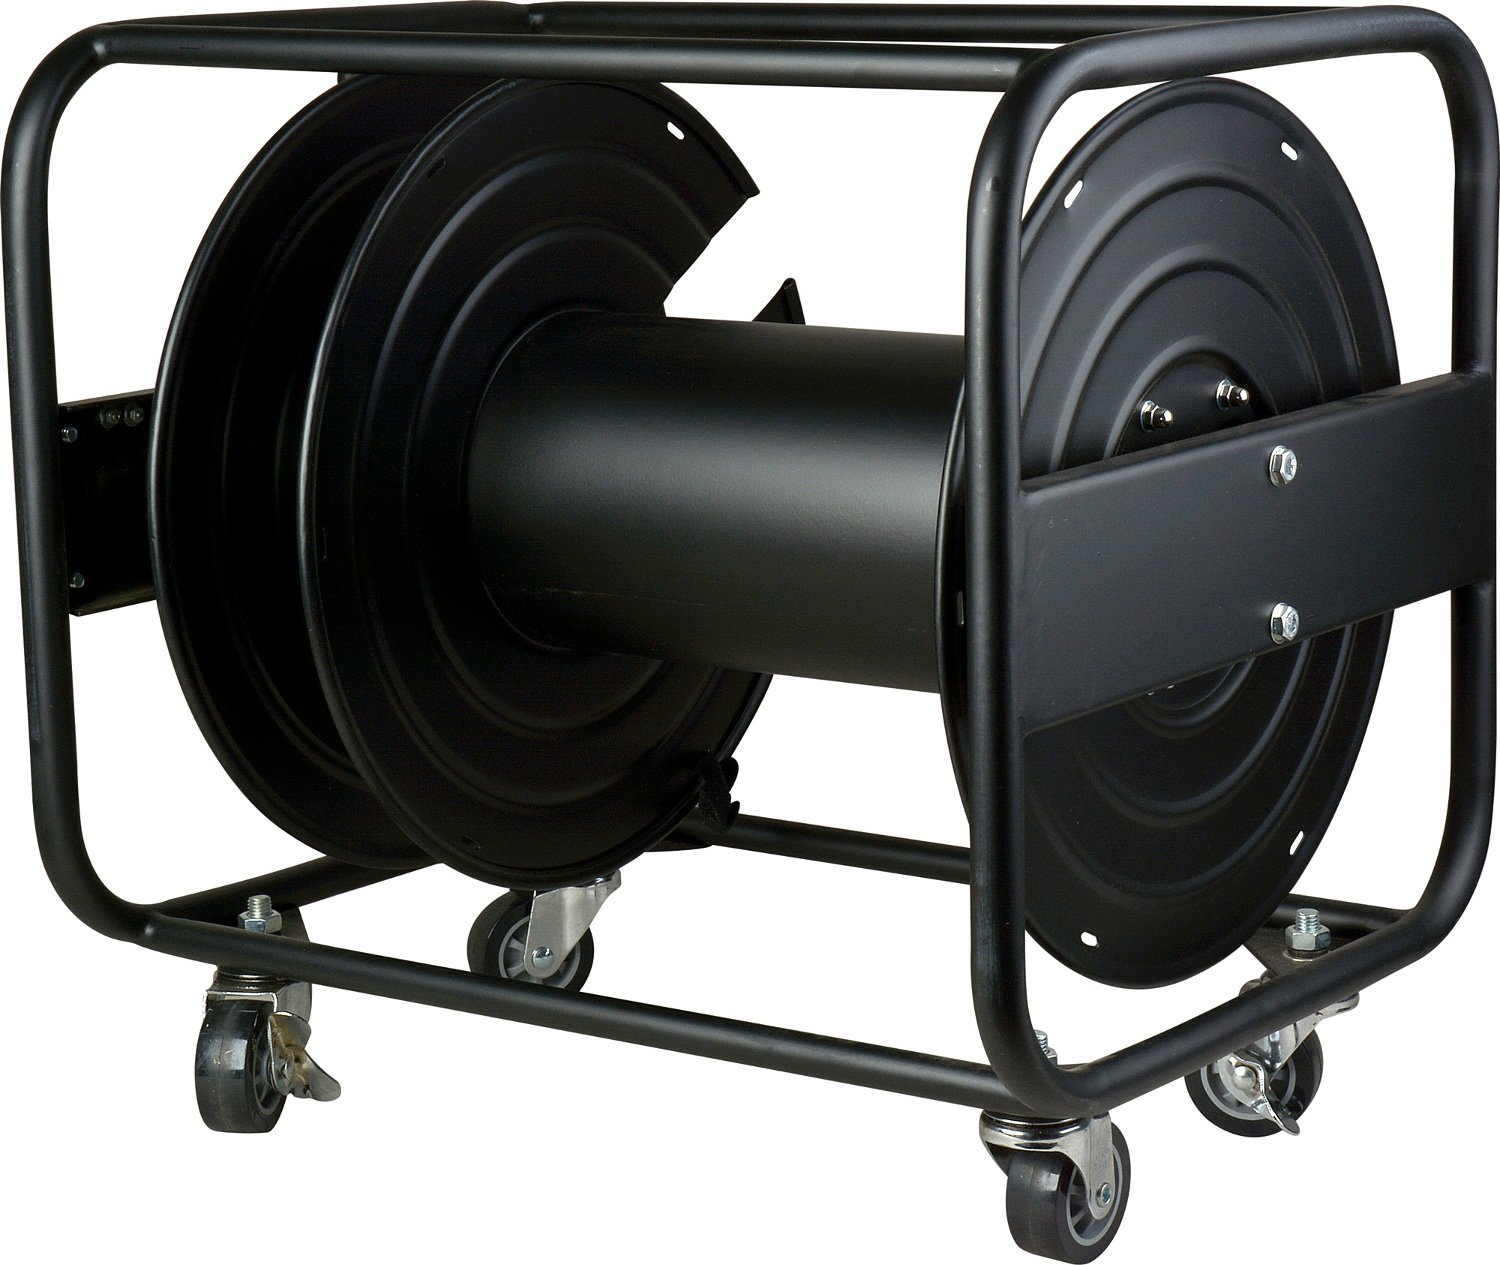 High-Capacity Cable Reel for Broadcast and Fiber Optic Cable